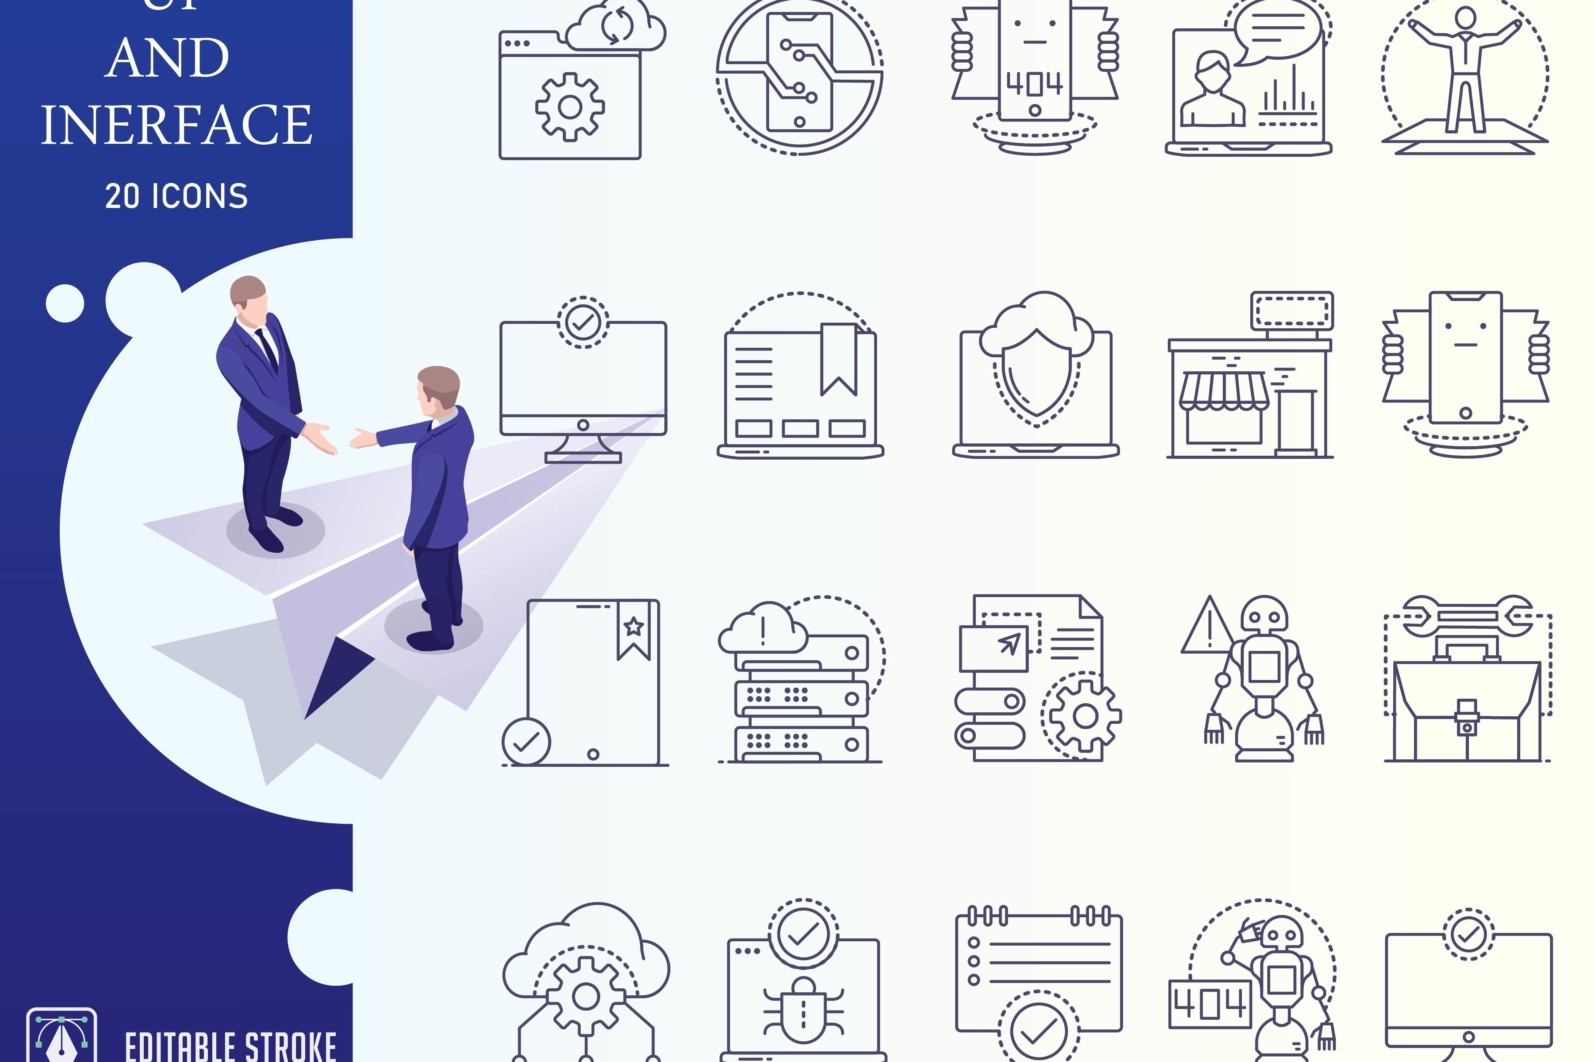 Outline : Ui And Interface Icon Set - UI Iconset outline 01 scaled -